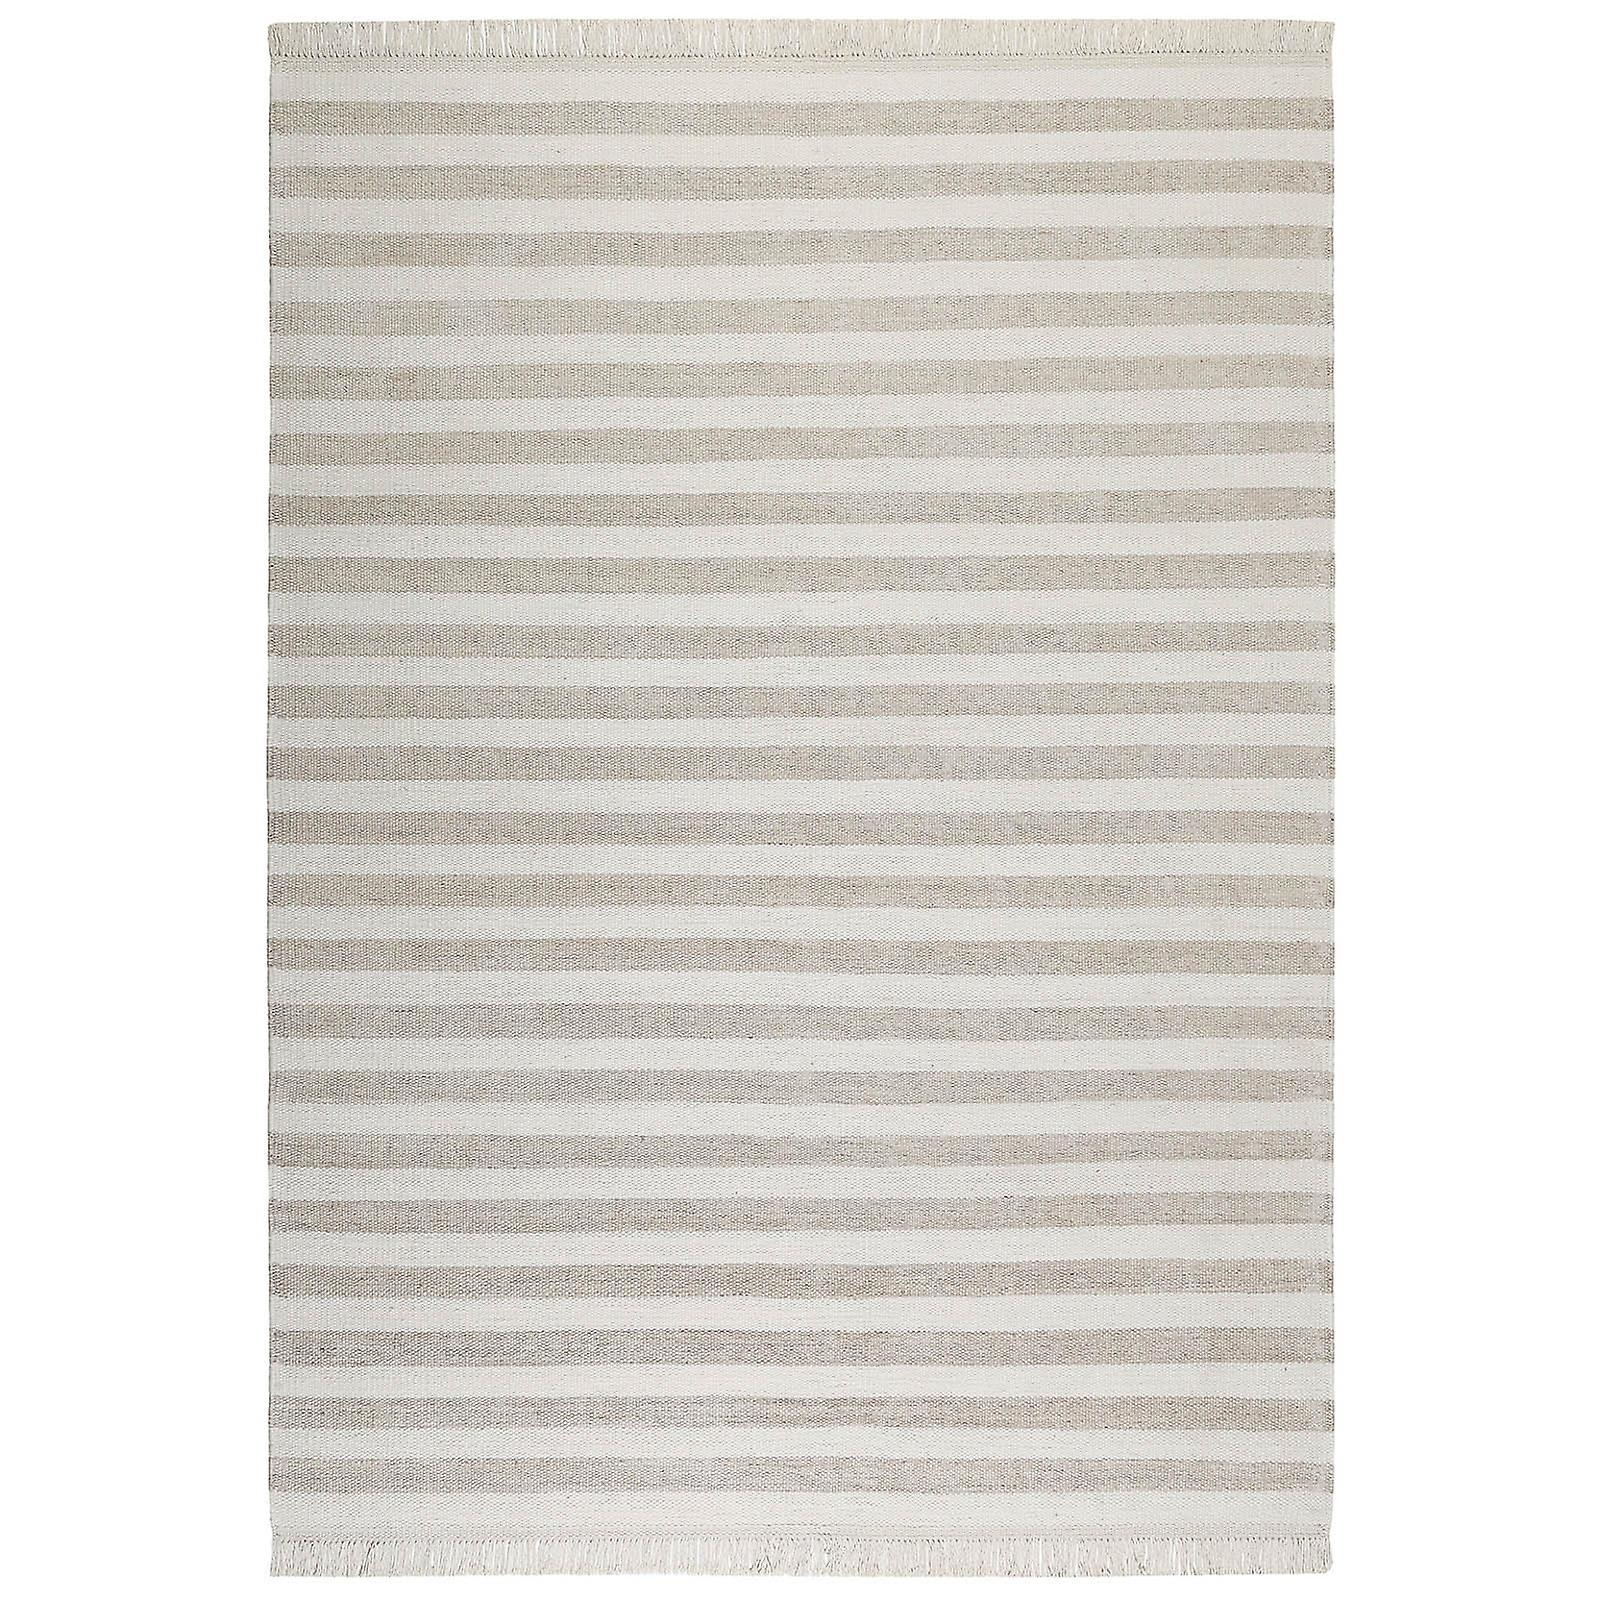 Noble Stripes Rugs 0010 04 By Carpets & Co In Beige